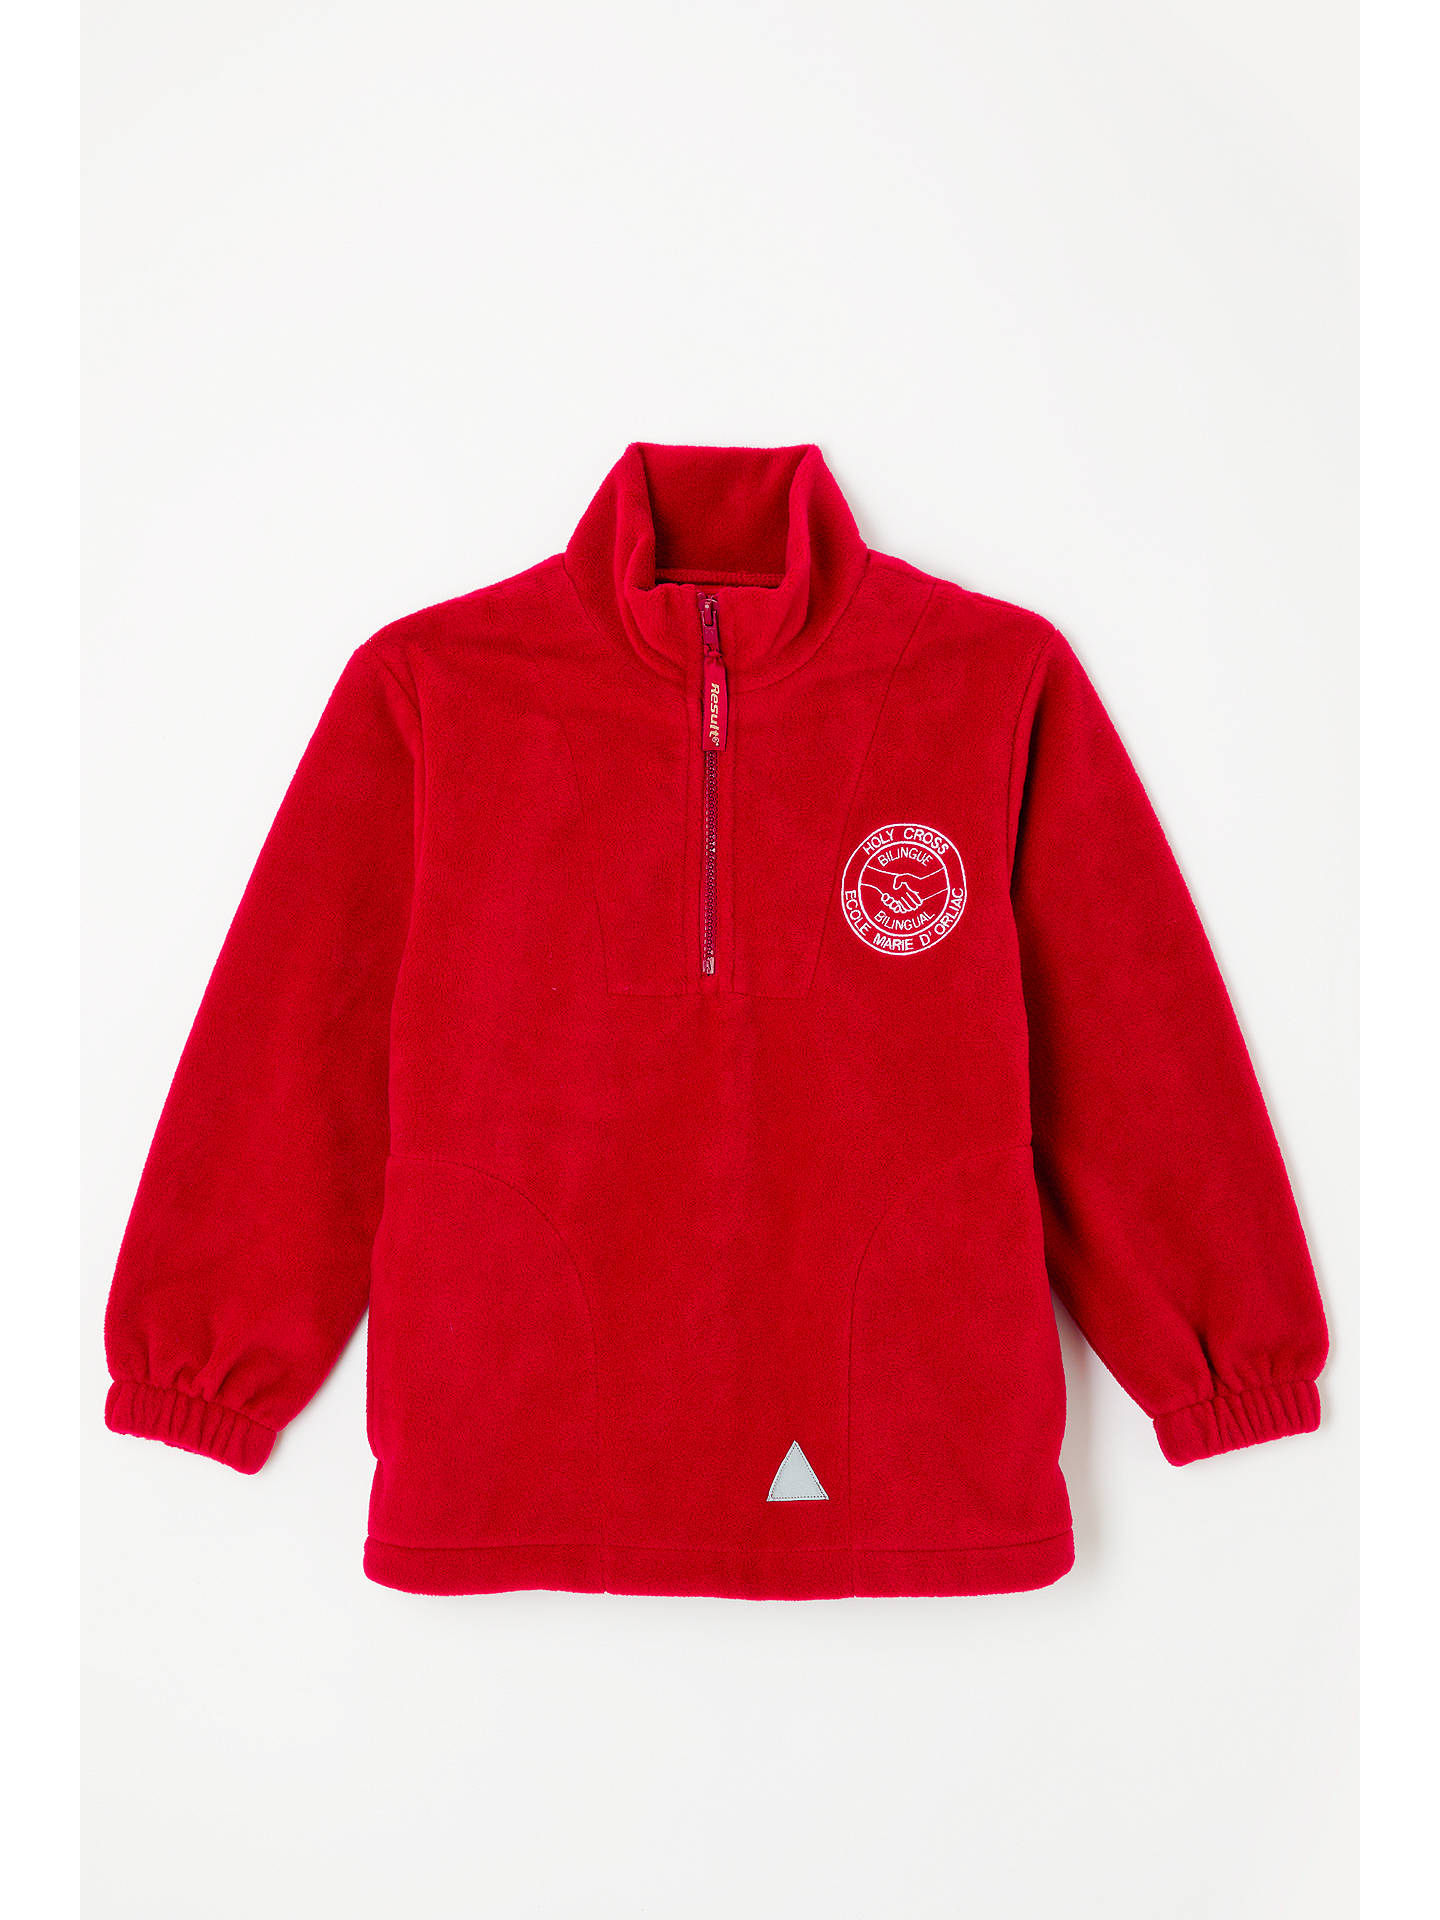 Buy Bilingue/Bilingual Stream of L'Ecole Marie D'Orliac & Holy Cross School Fleece, Red, 3-4 years Online at johnlewis.com